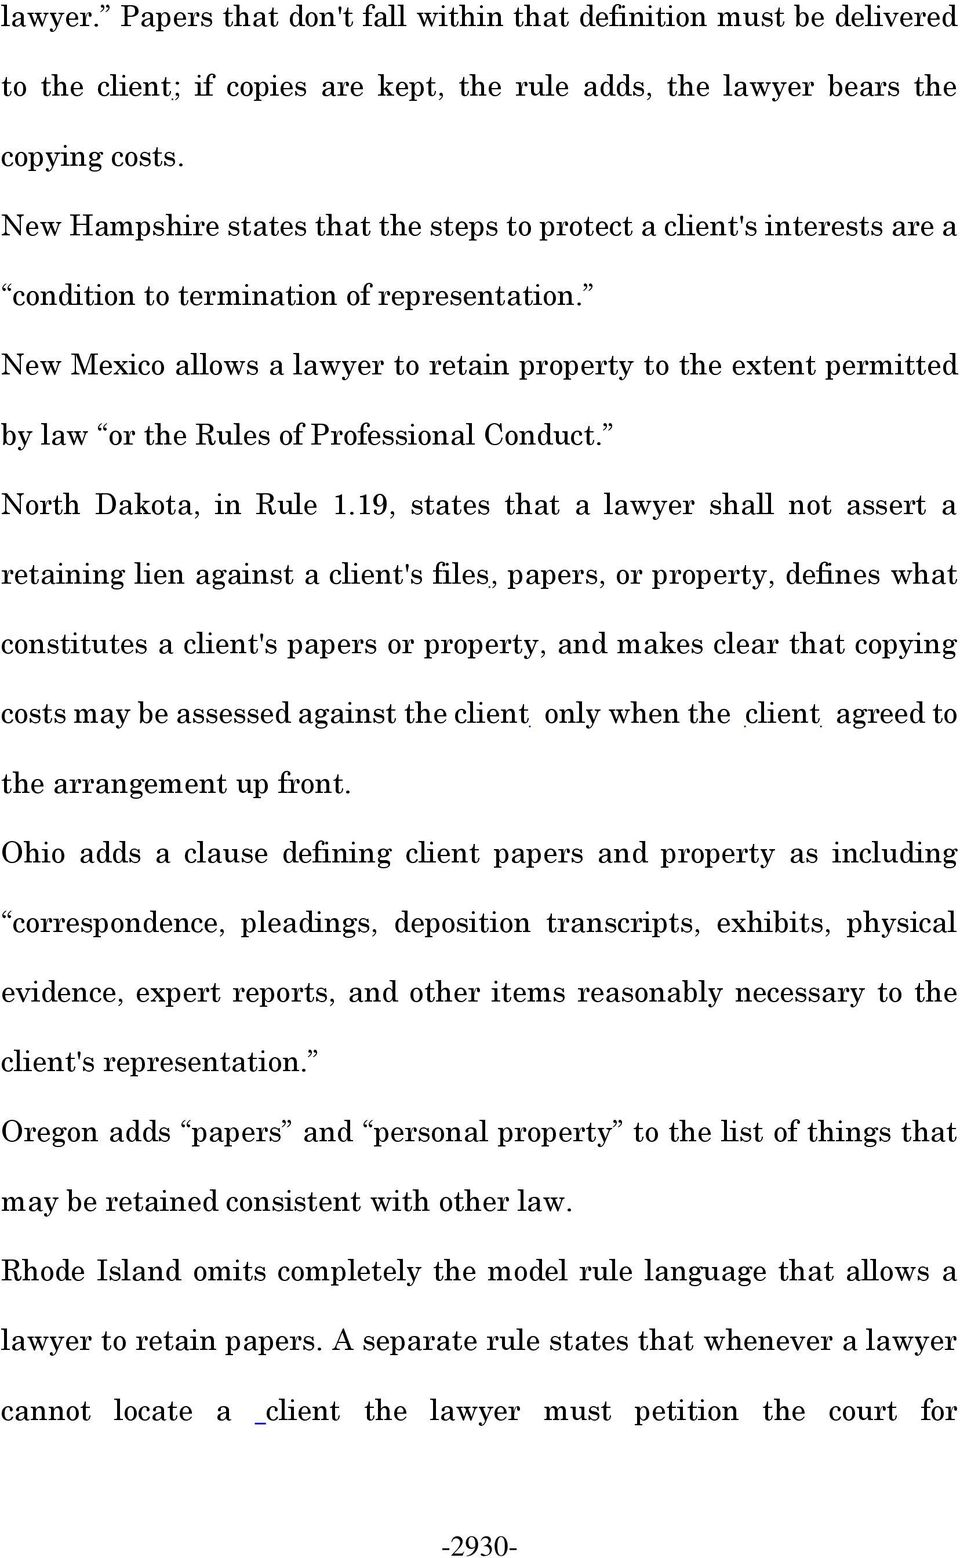 New Mexico allows a lawyer to retain property to the extent permitted by law or the Rules of Professional Conduct. North Dakota, in Rule 1.